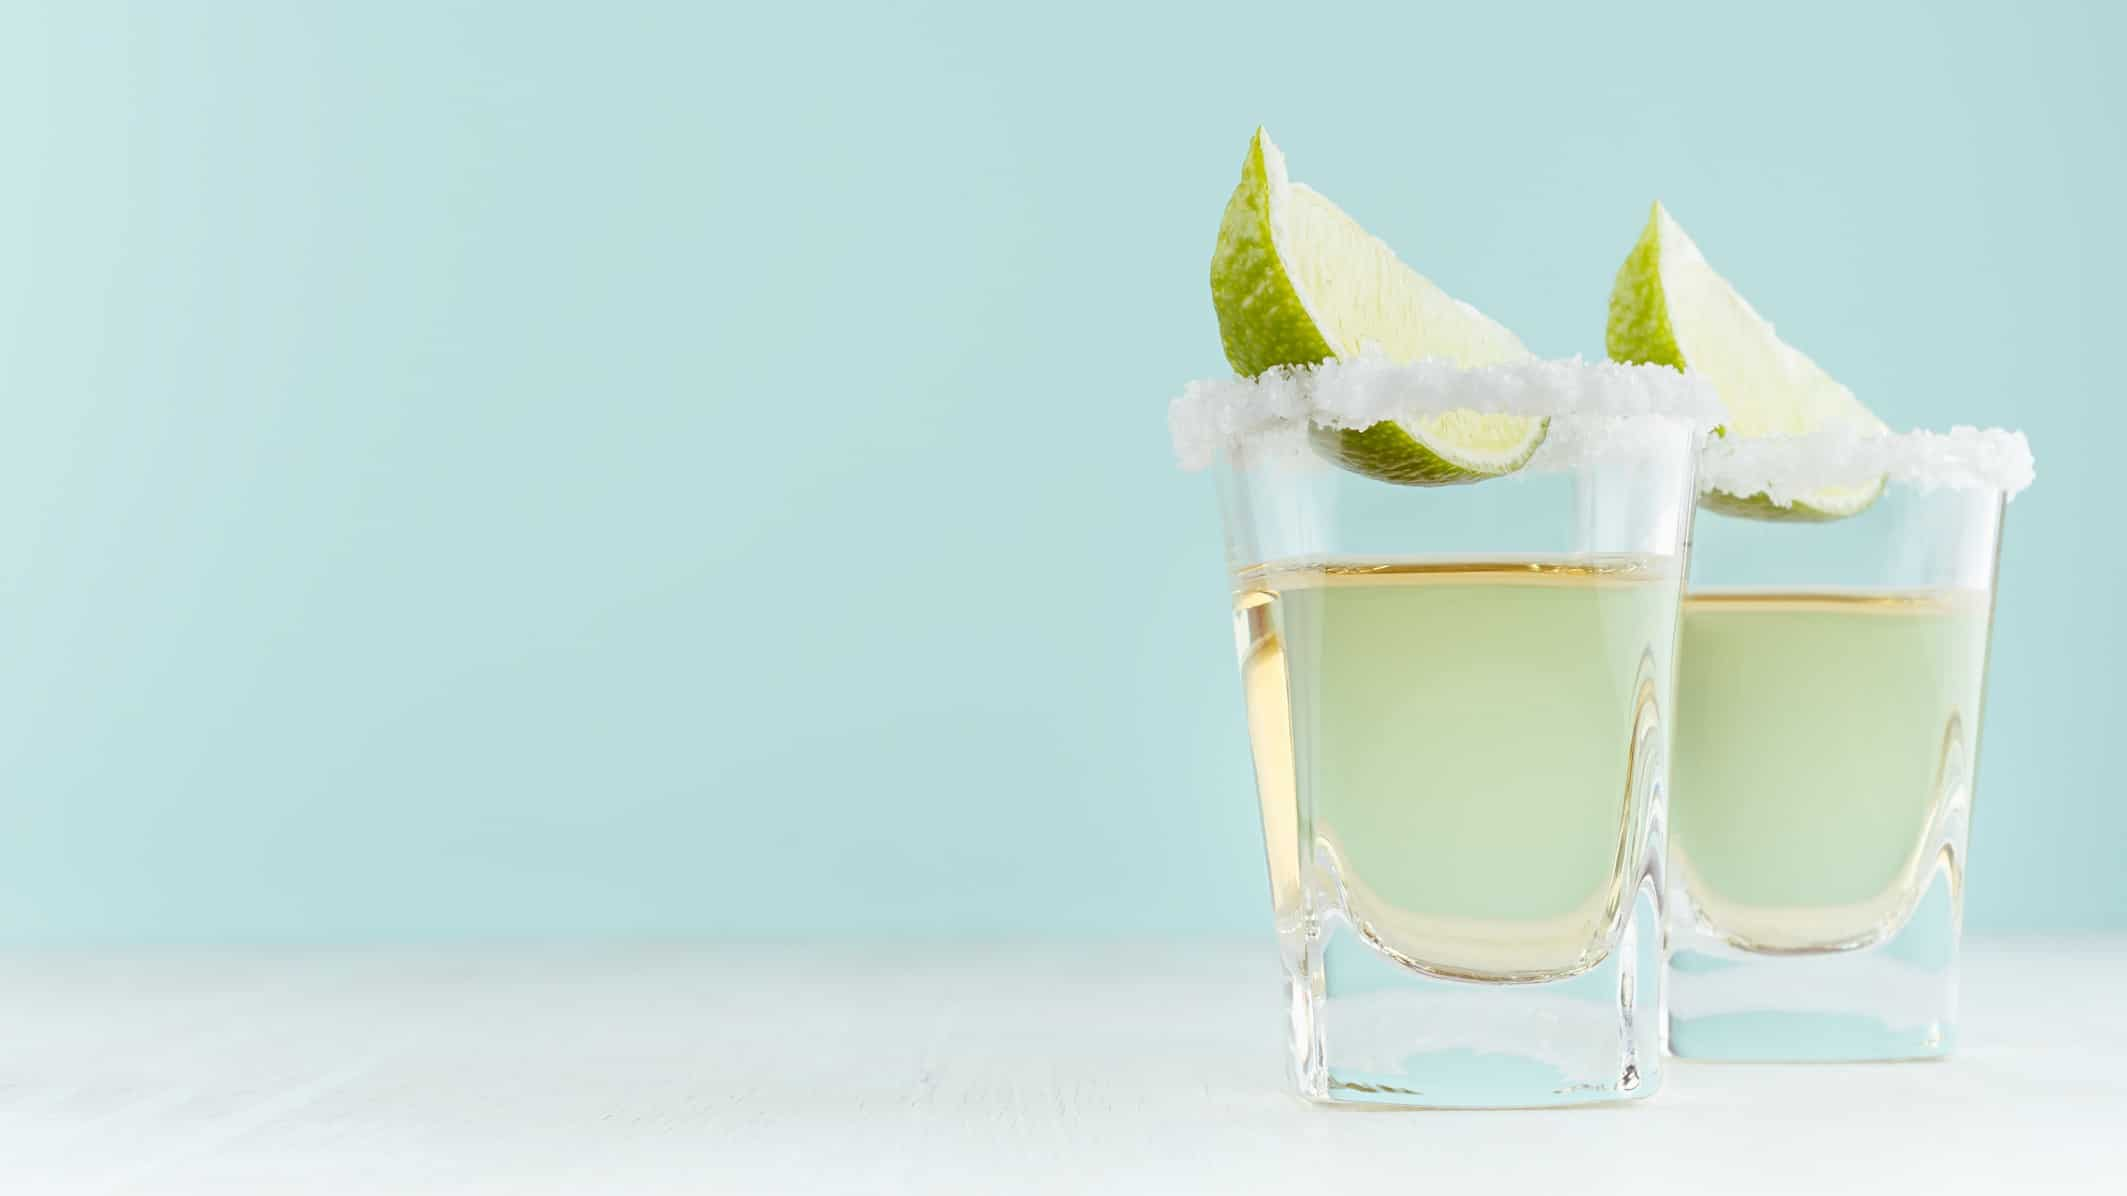 Two shot glasses with tequila, salt and lime on a light blue background